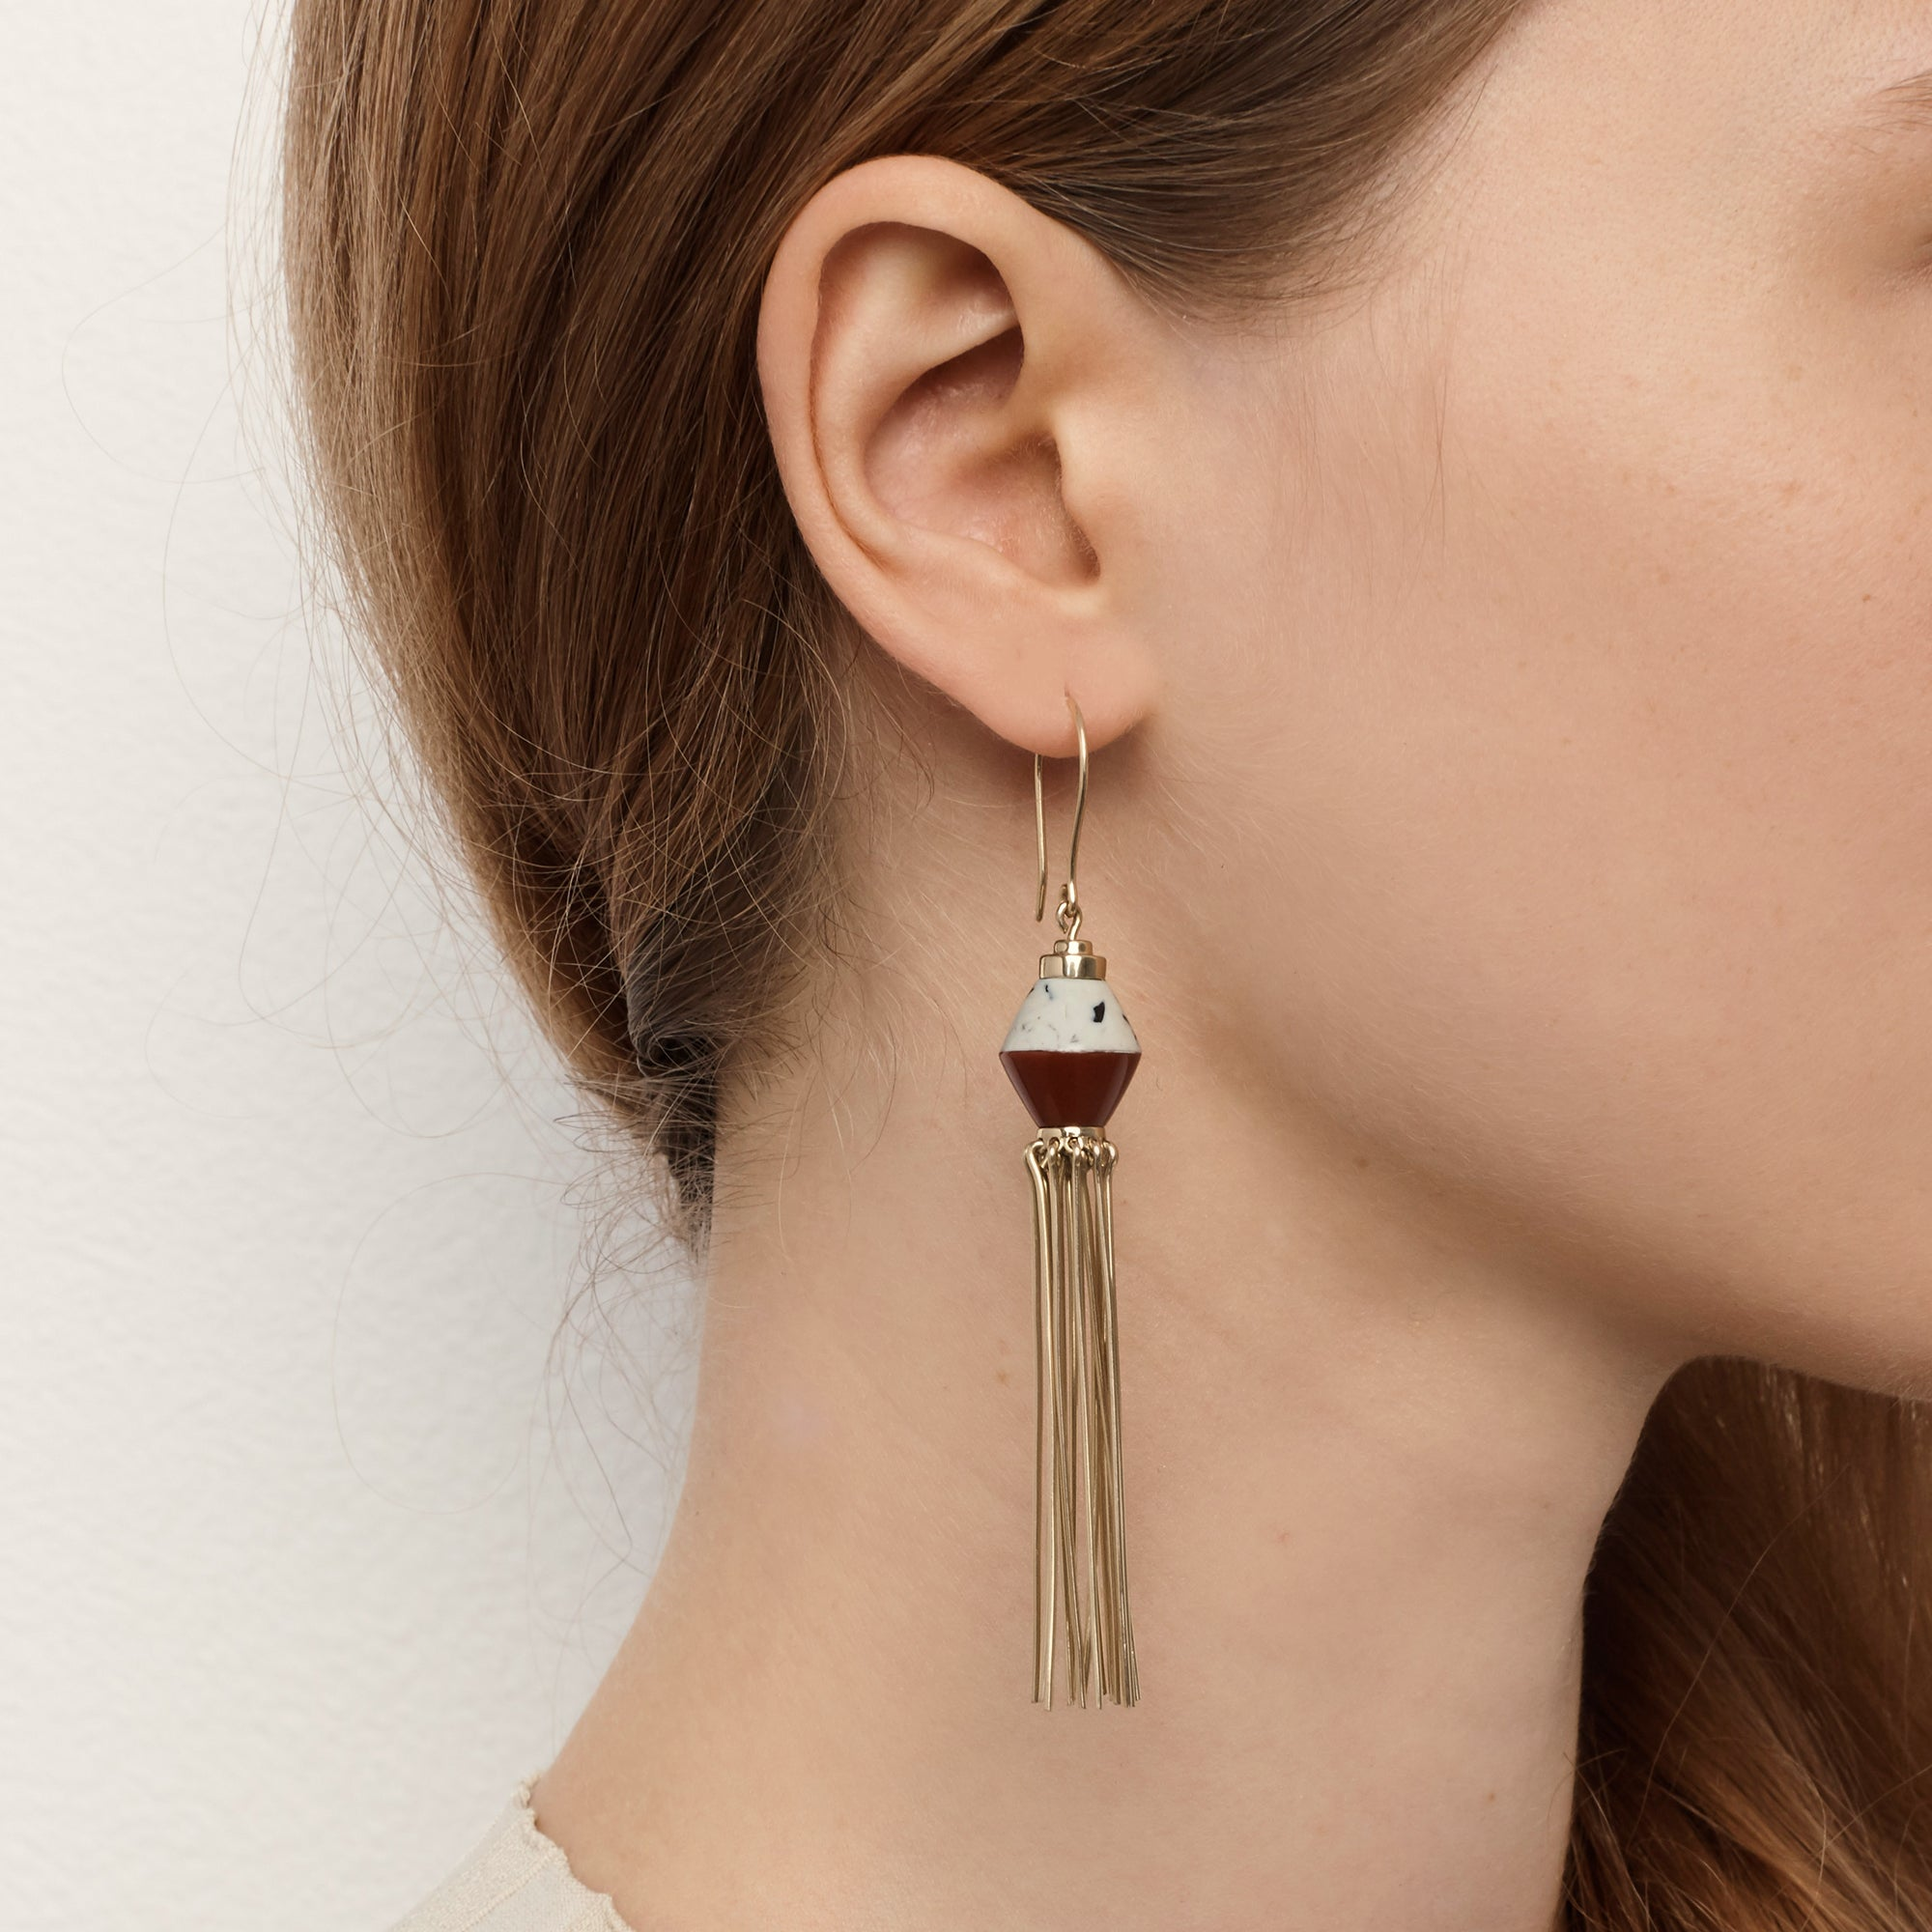 Disorientation Earrings - Mix Granite